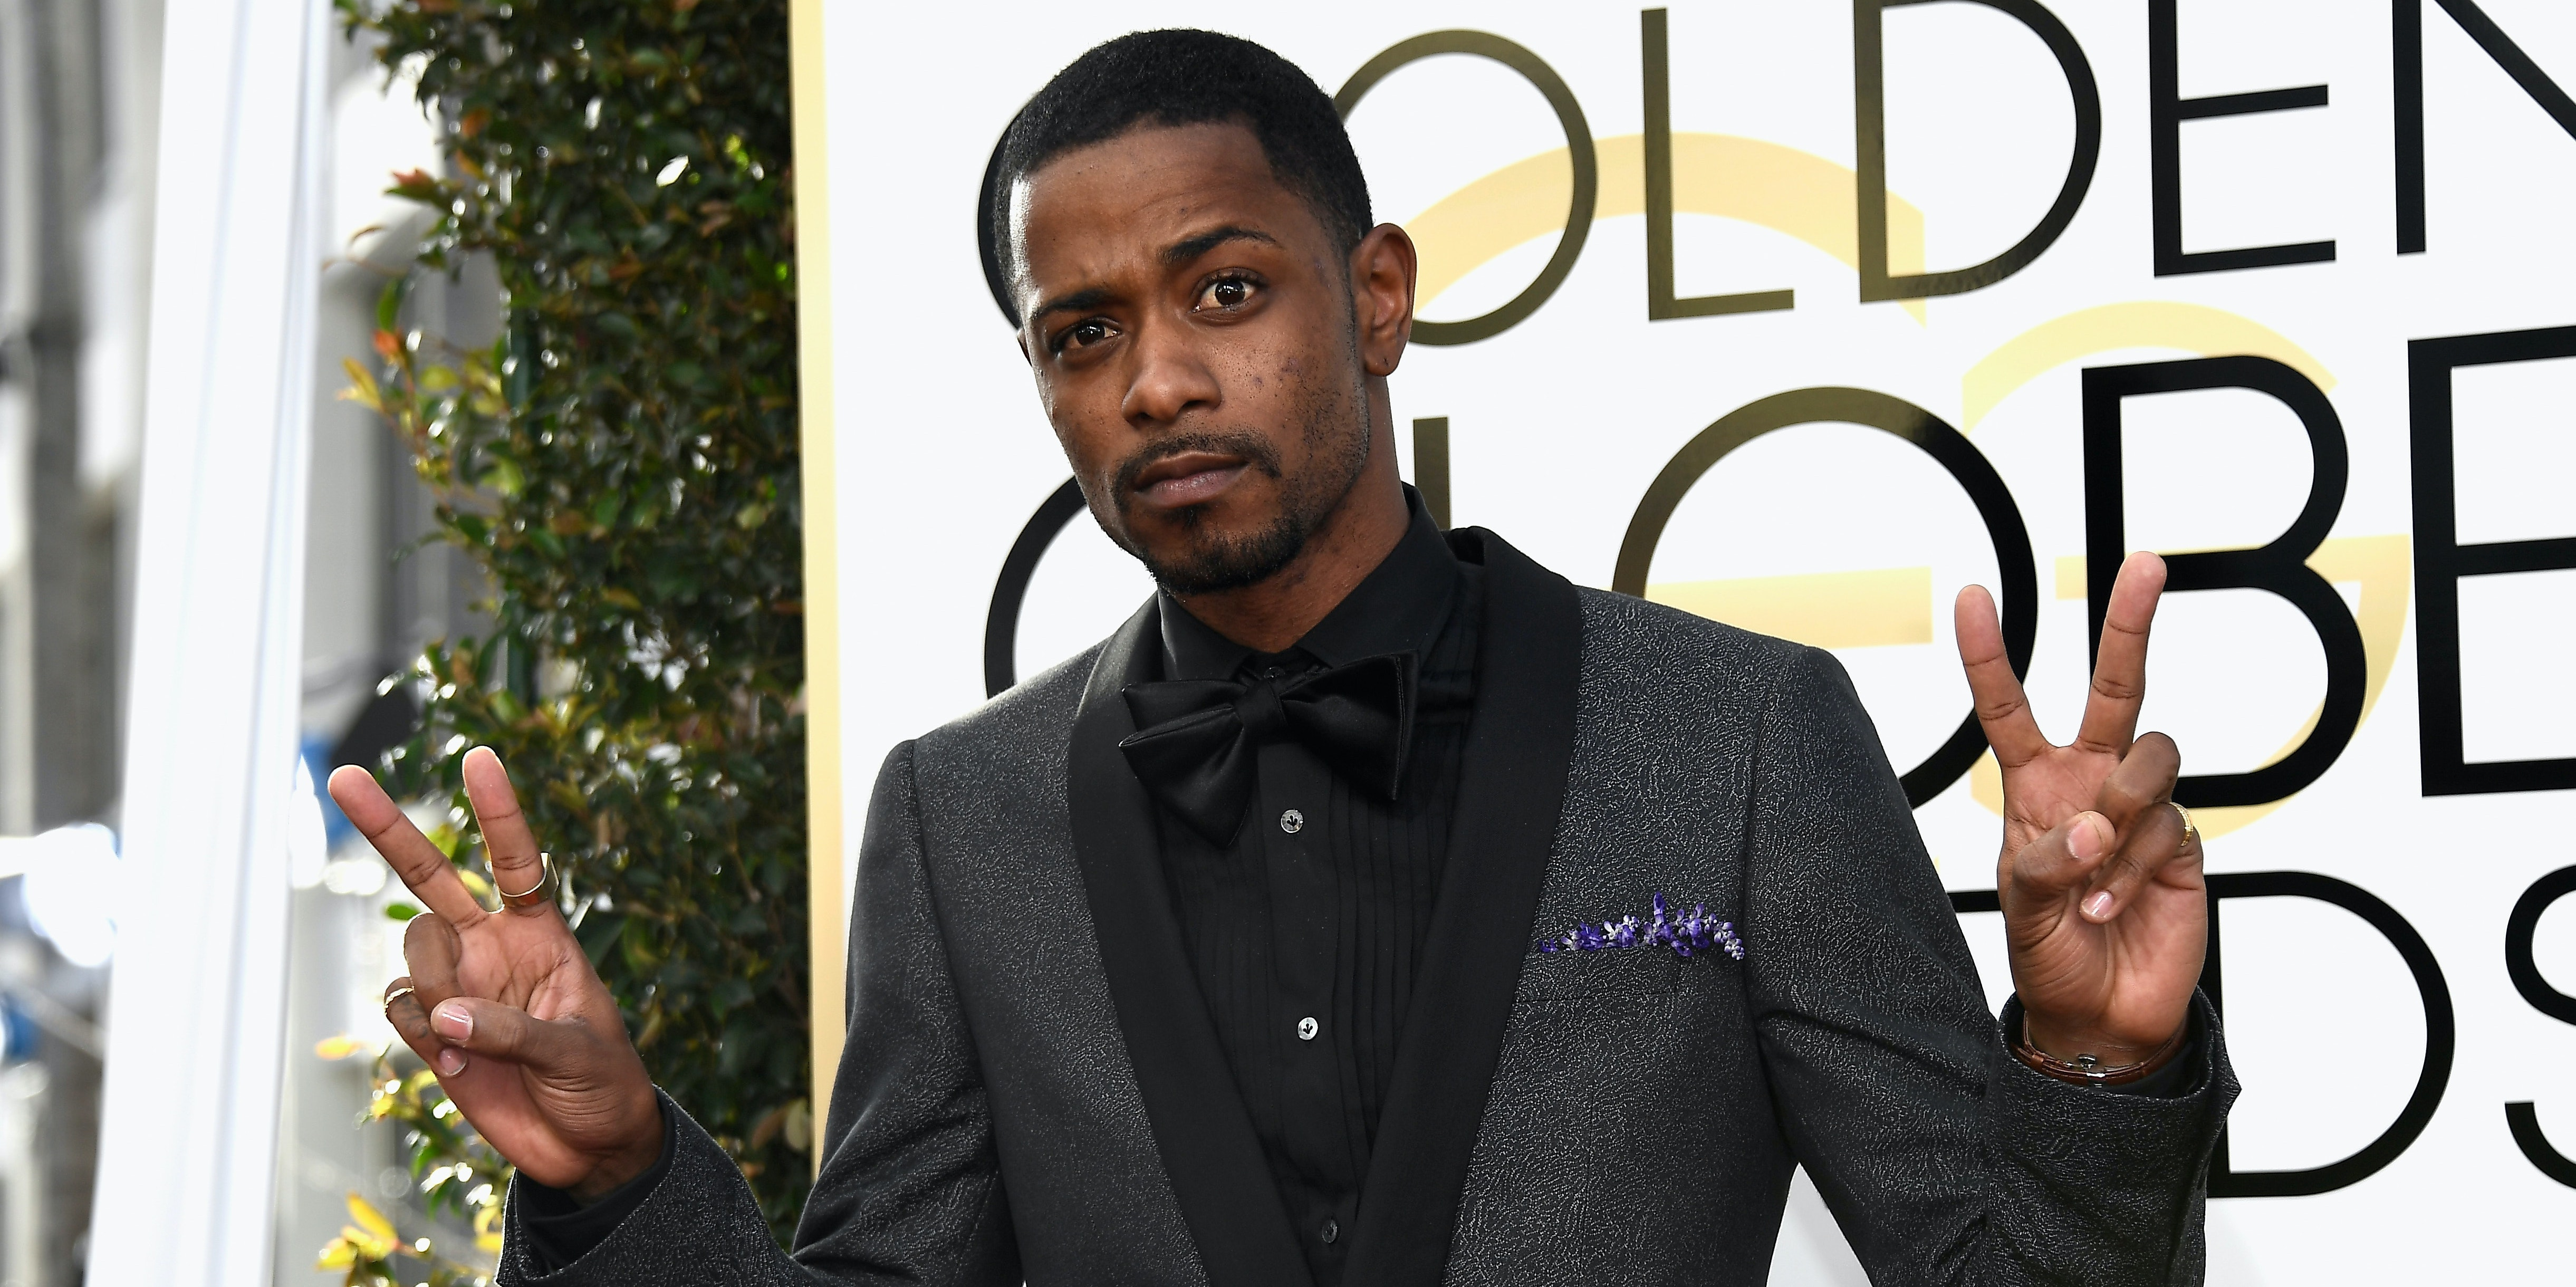 BEVERLY HILLS, CA - JANUARY 08: Actor LaKeith  Stanfield attends the 74th Annual Golden Globe Awards at The Beverly Hilton Hotel on January 8, 2017 in Beverly Hills, California.  (Photo by Frazer Harrison/Getty Images)